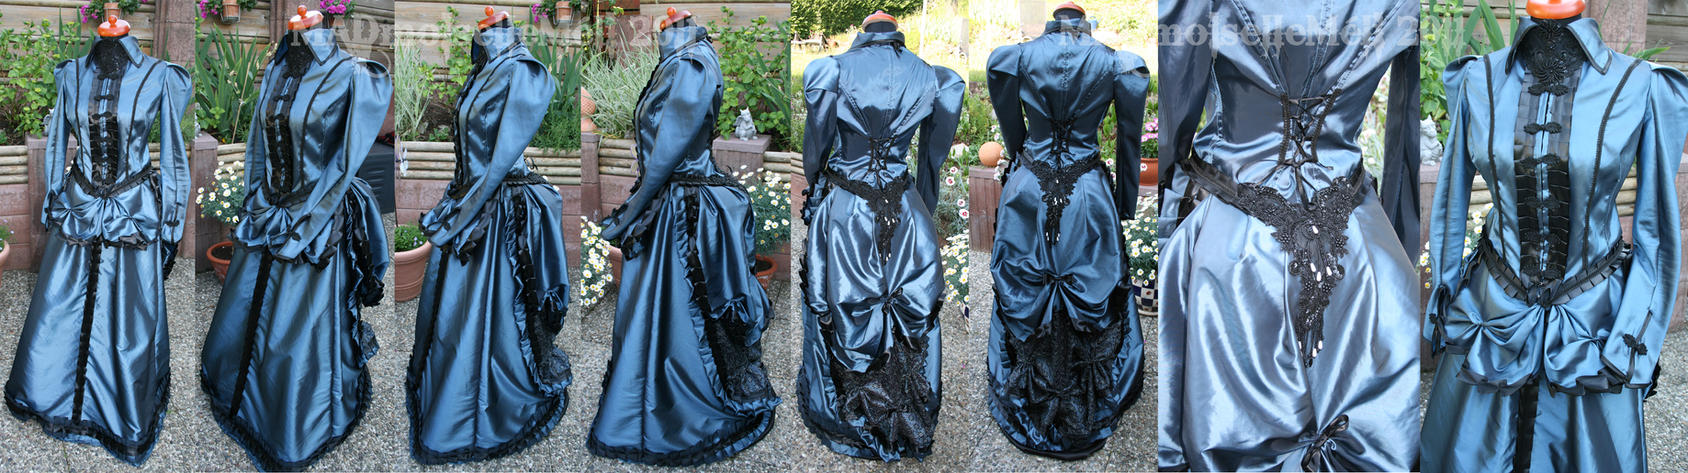 WGT 2011 Bustle Gown by MADmoiselleMeli